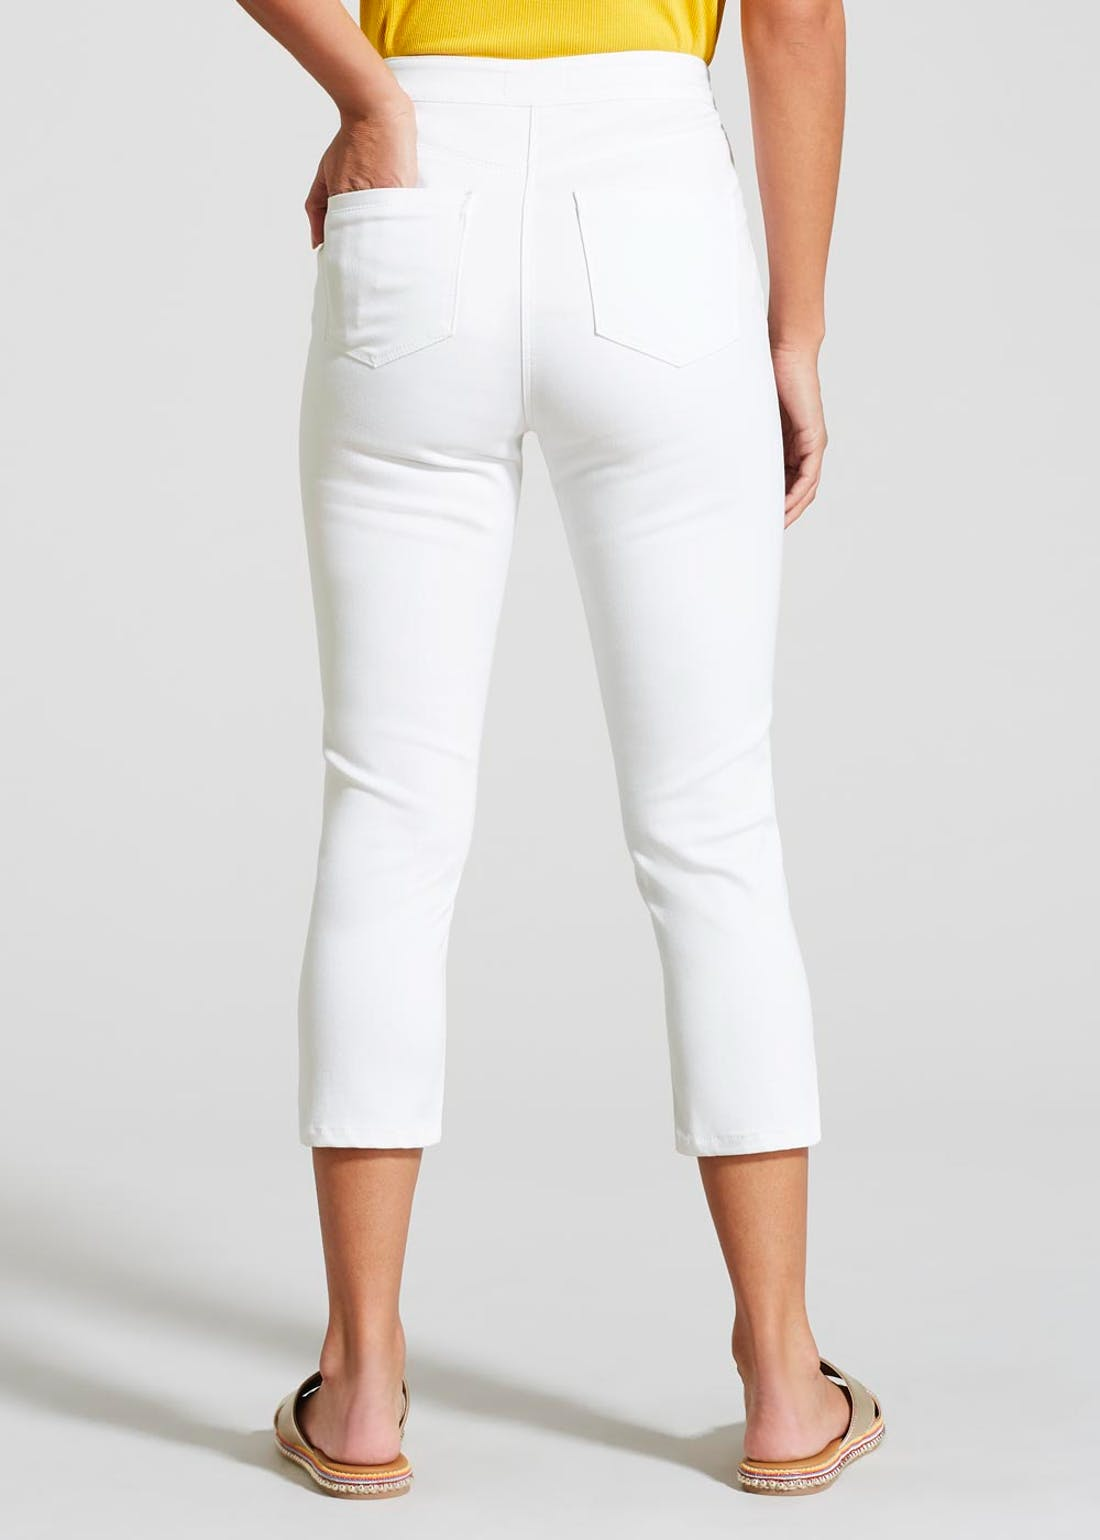 Jessie High Waisted Cropped Jeans